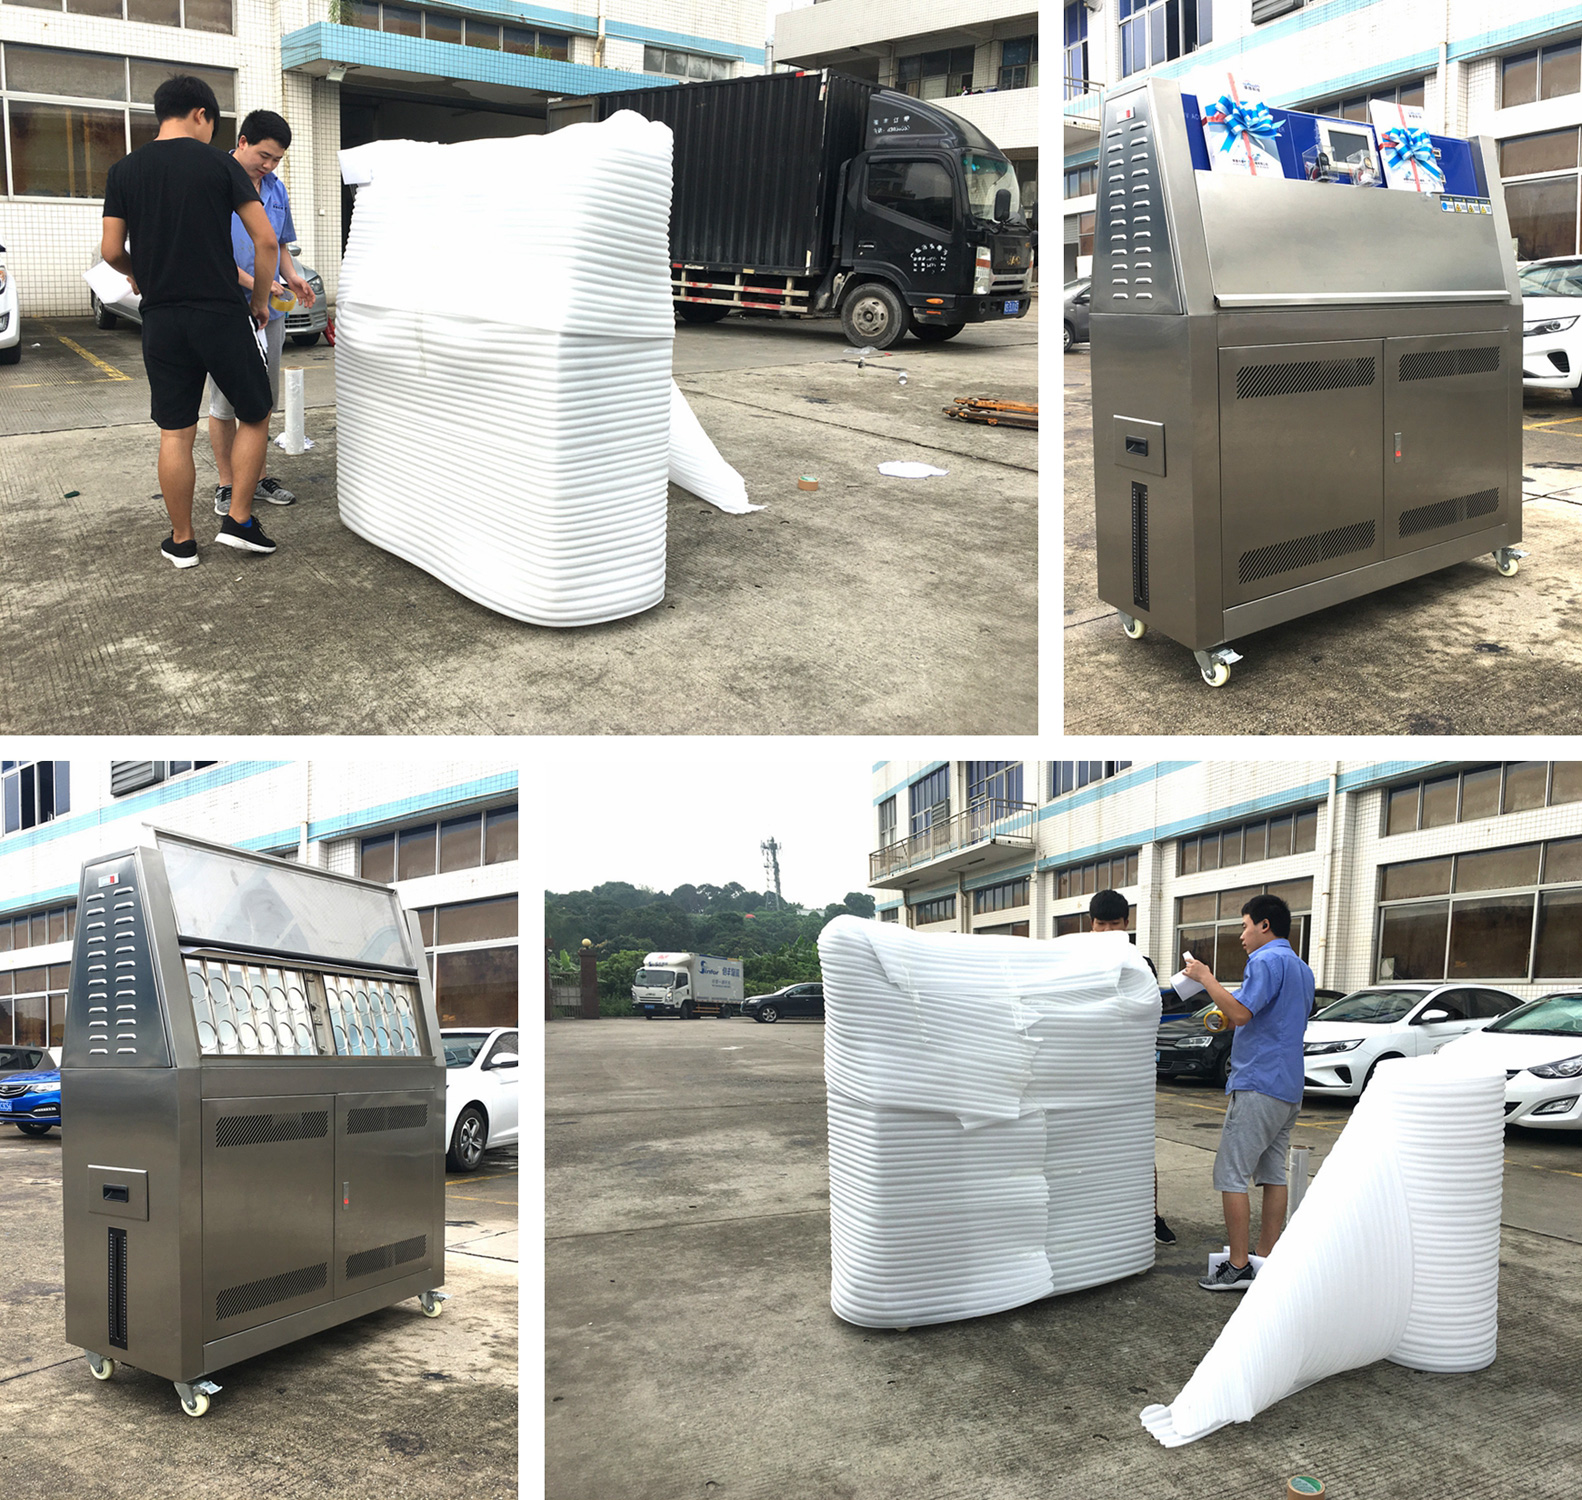 UV test chamber packing and shipment